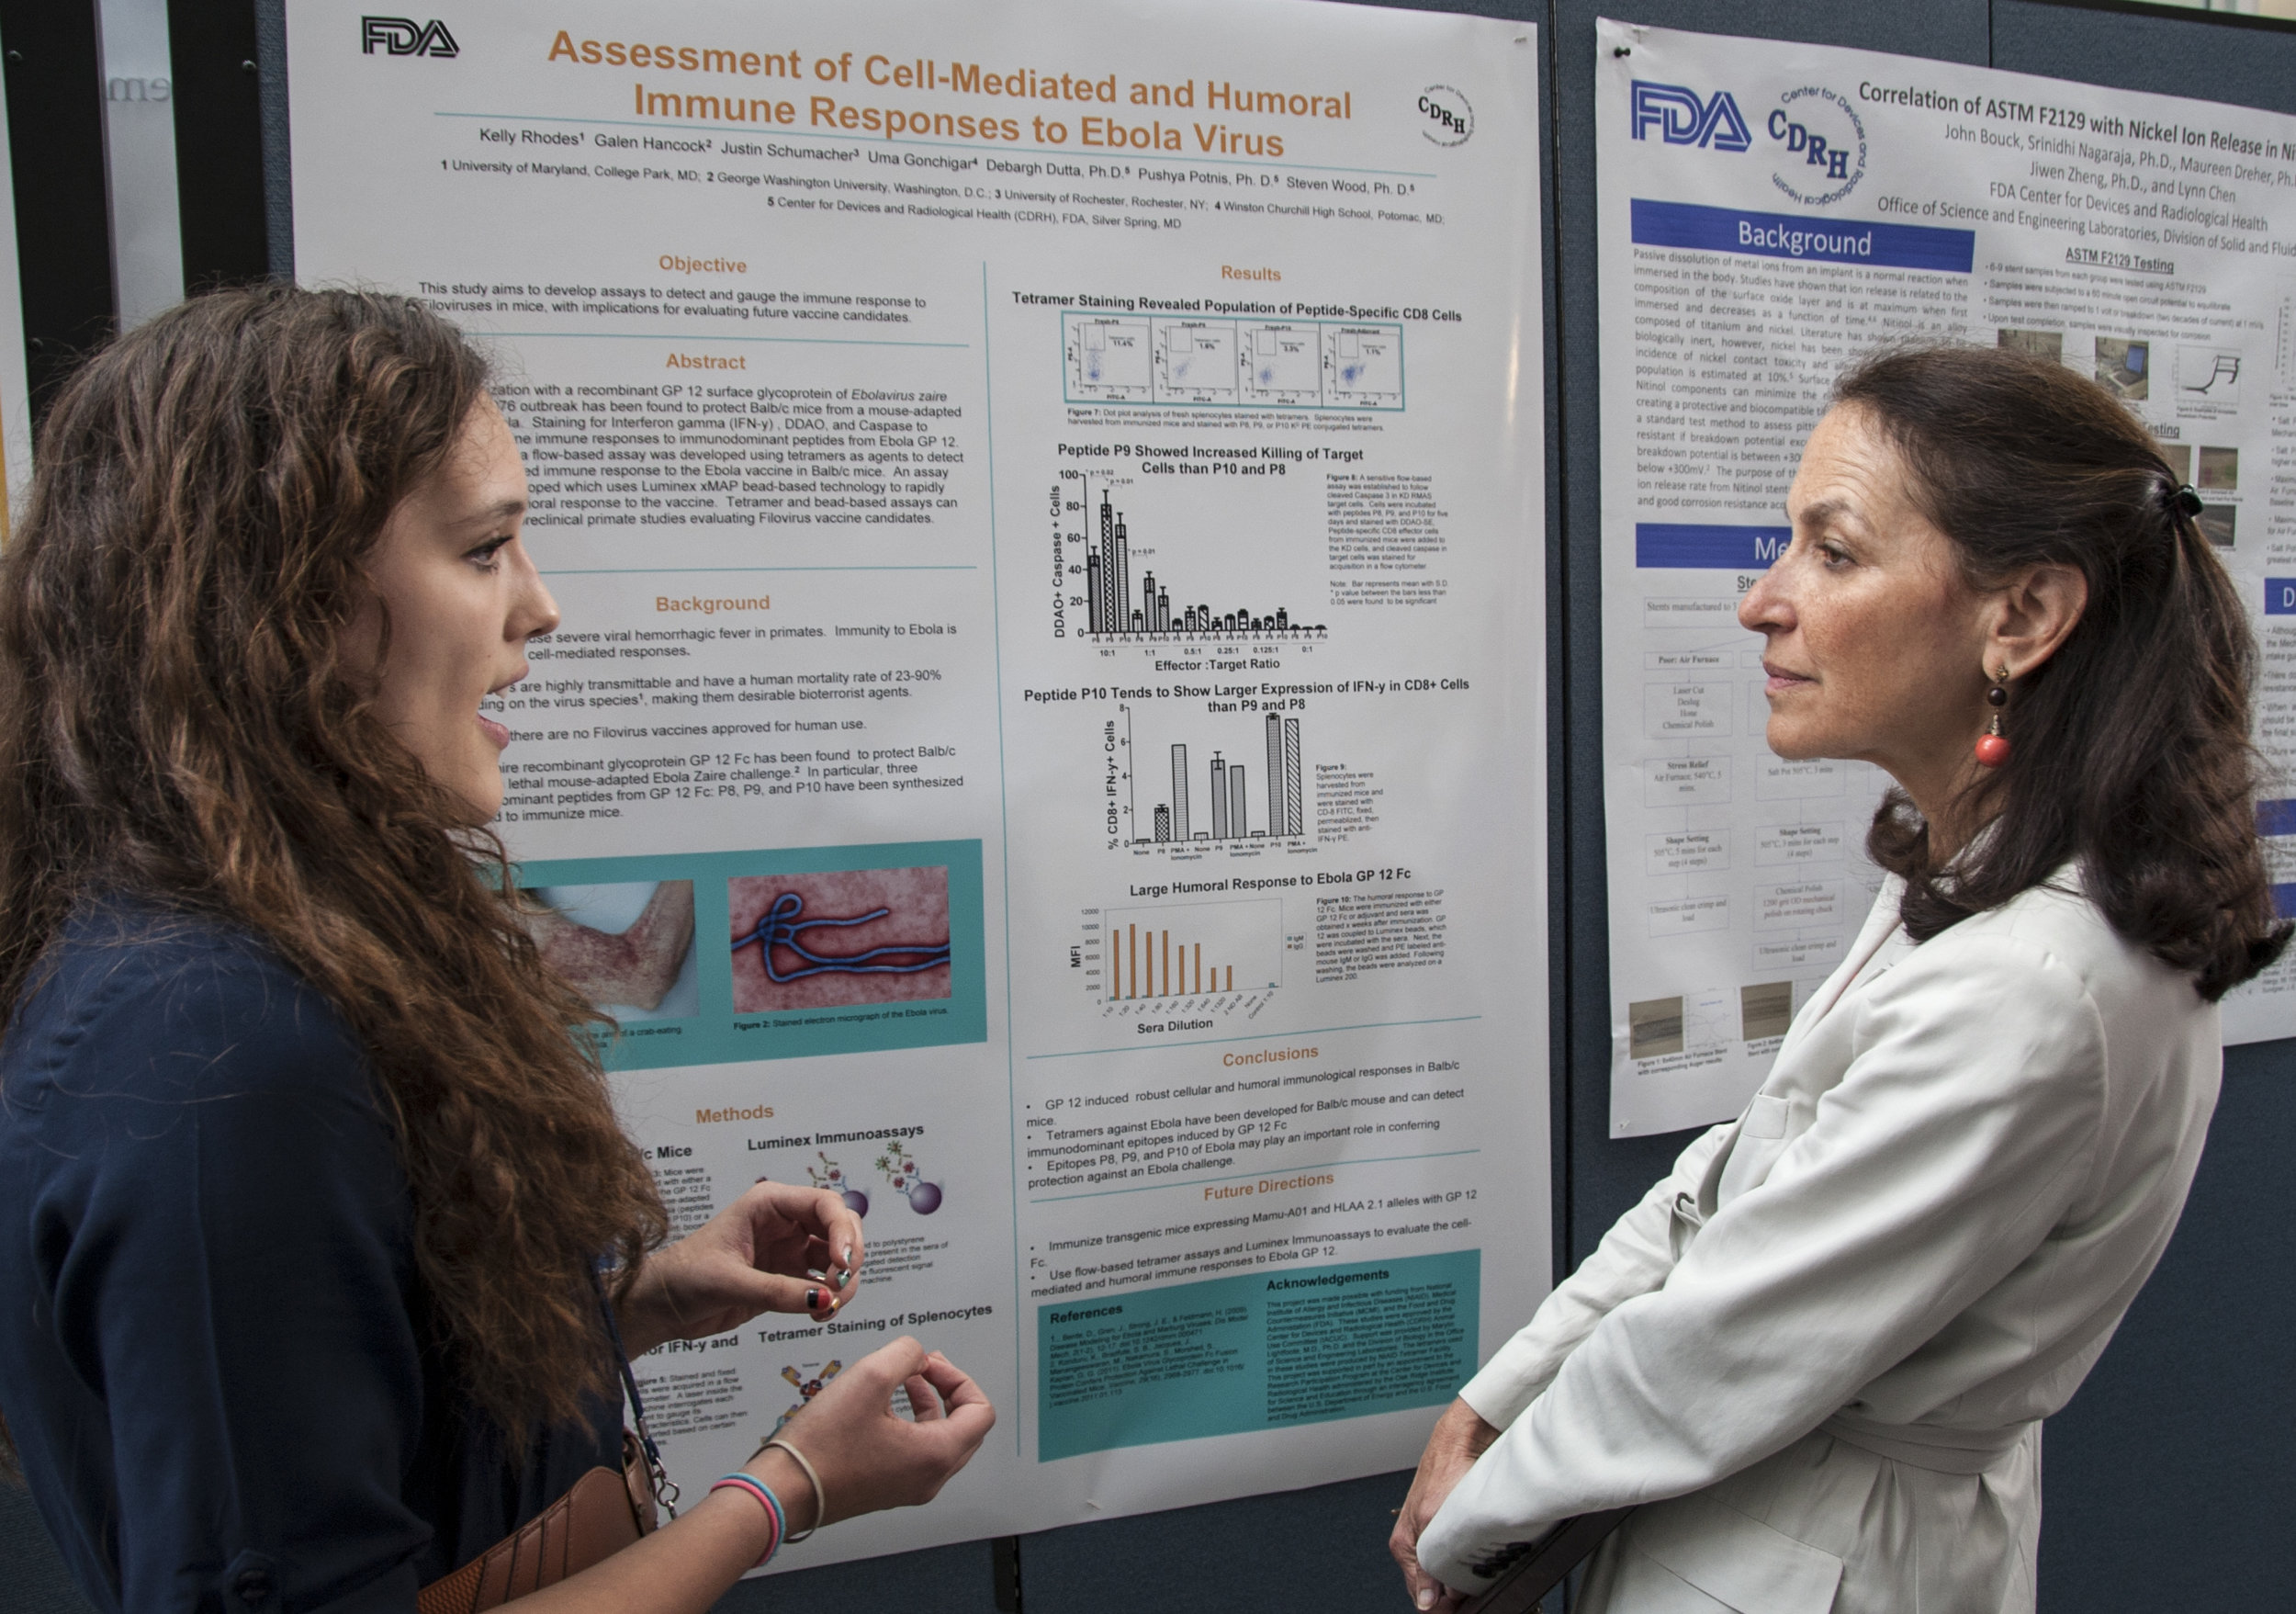 Science_Student_Poster_Symposium_(16796190065).jpg